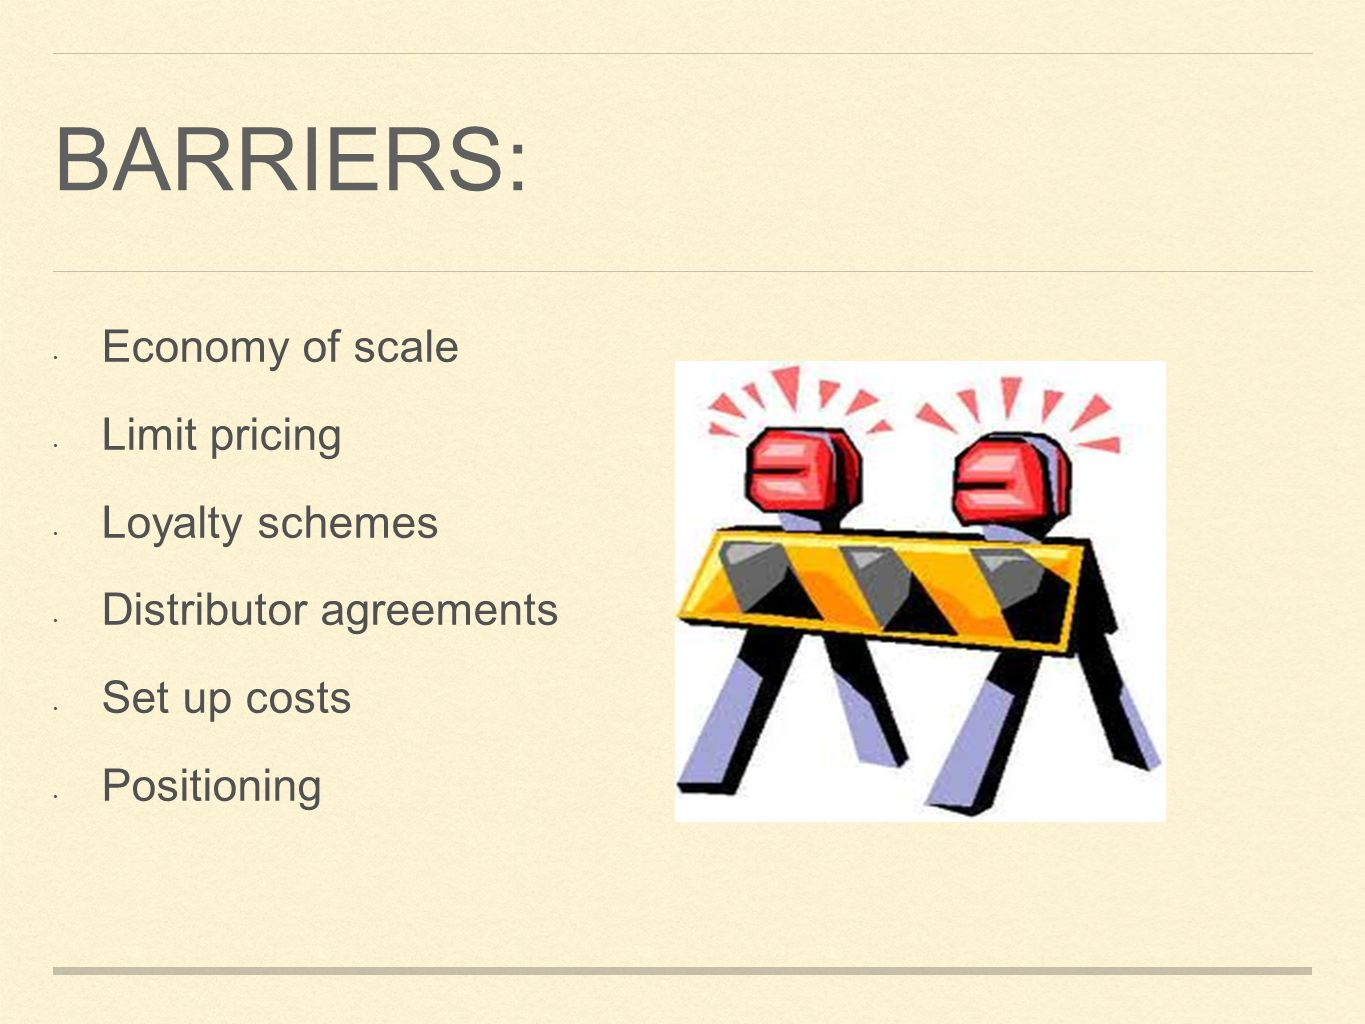 BARRIERS: Economy of scale Limit pricing Loyalty schemes Distributor agreements Set up costs Positioning